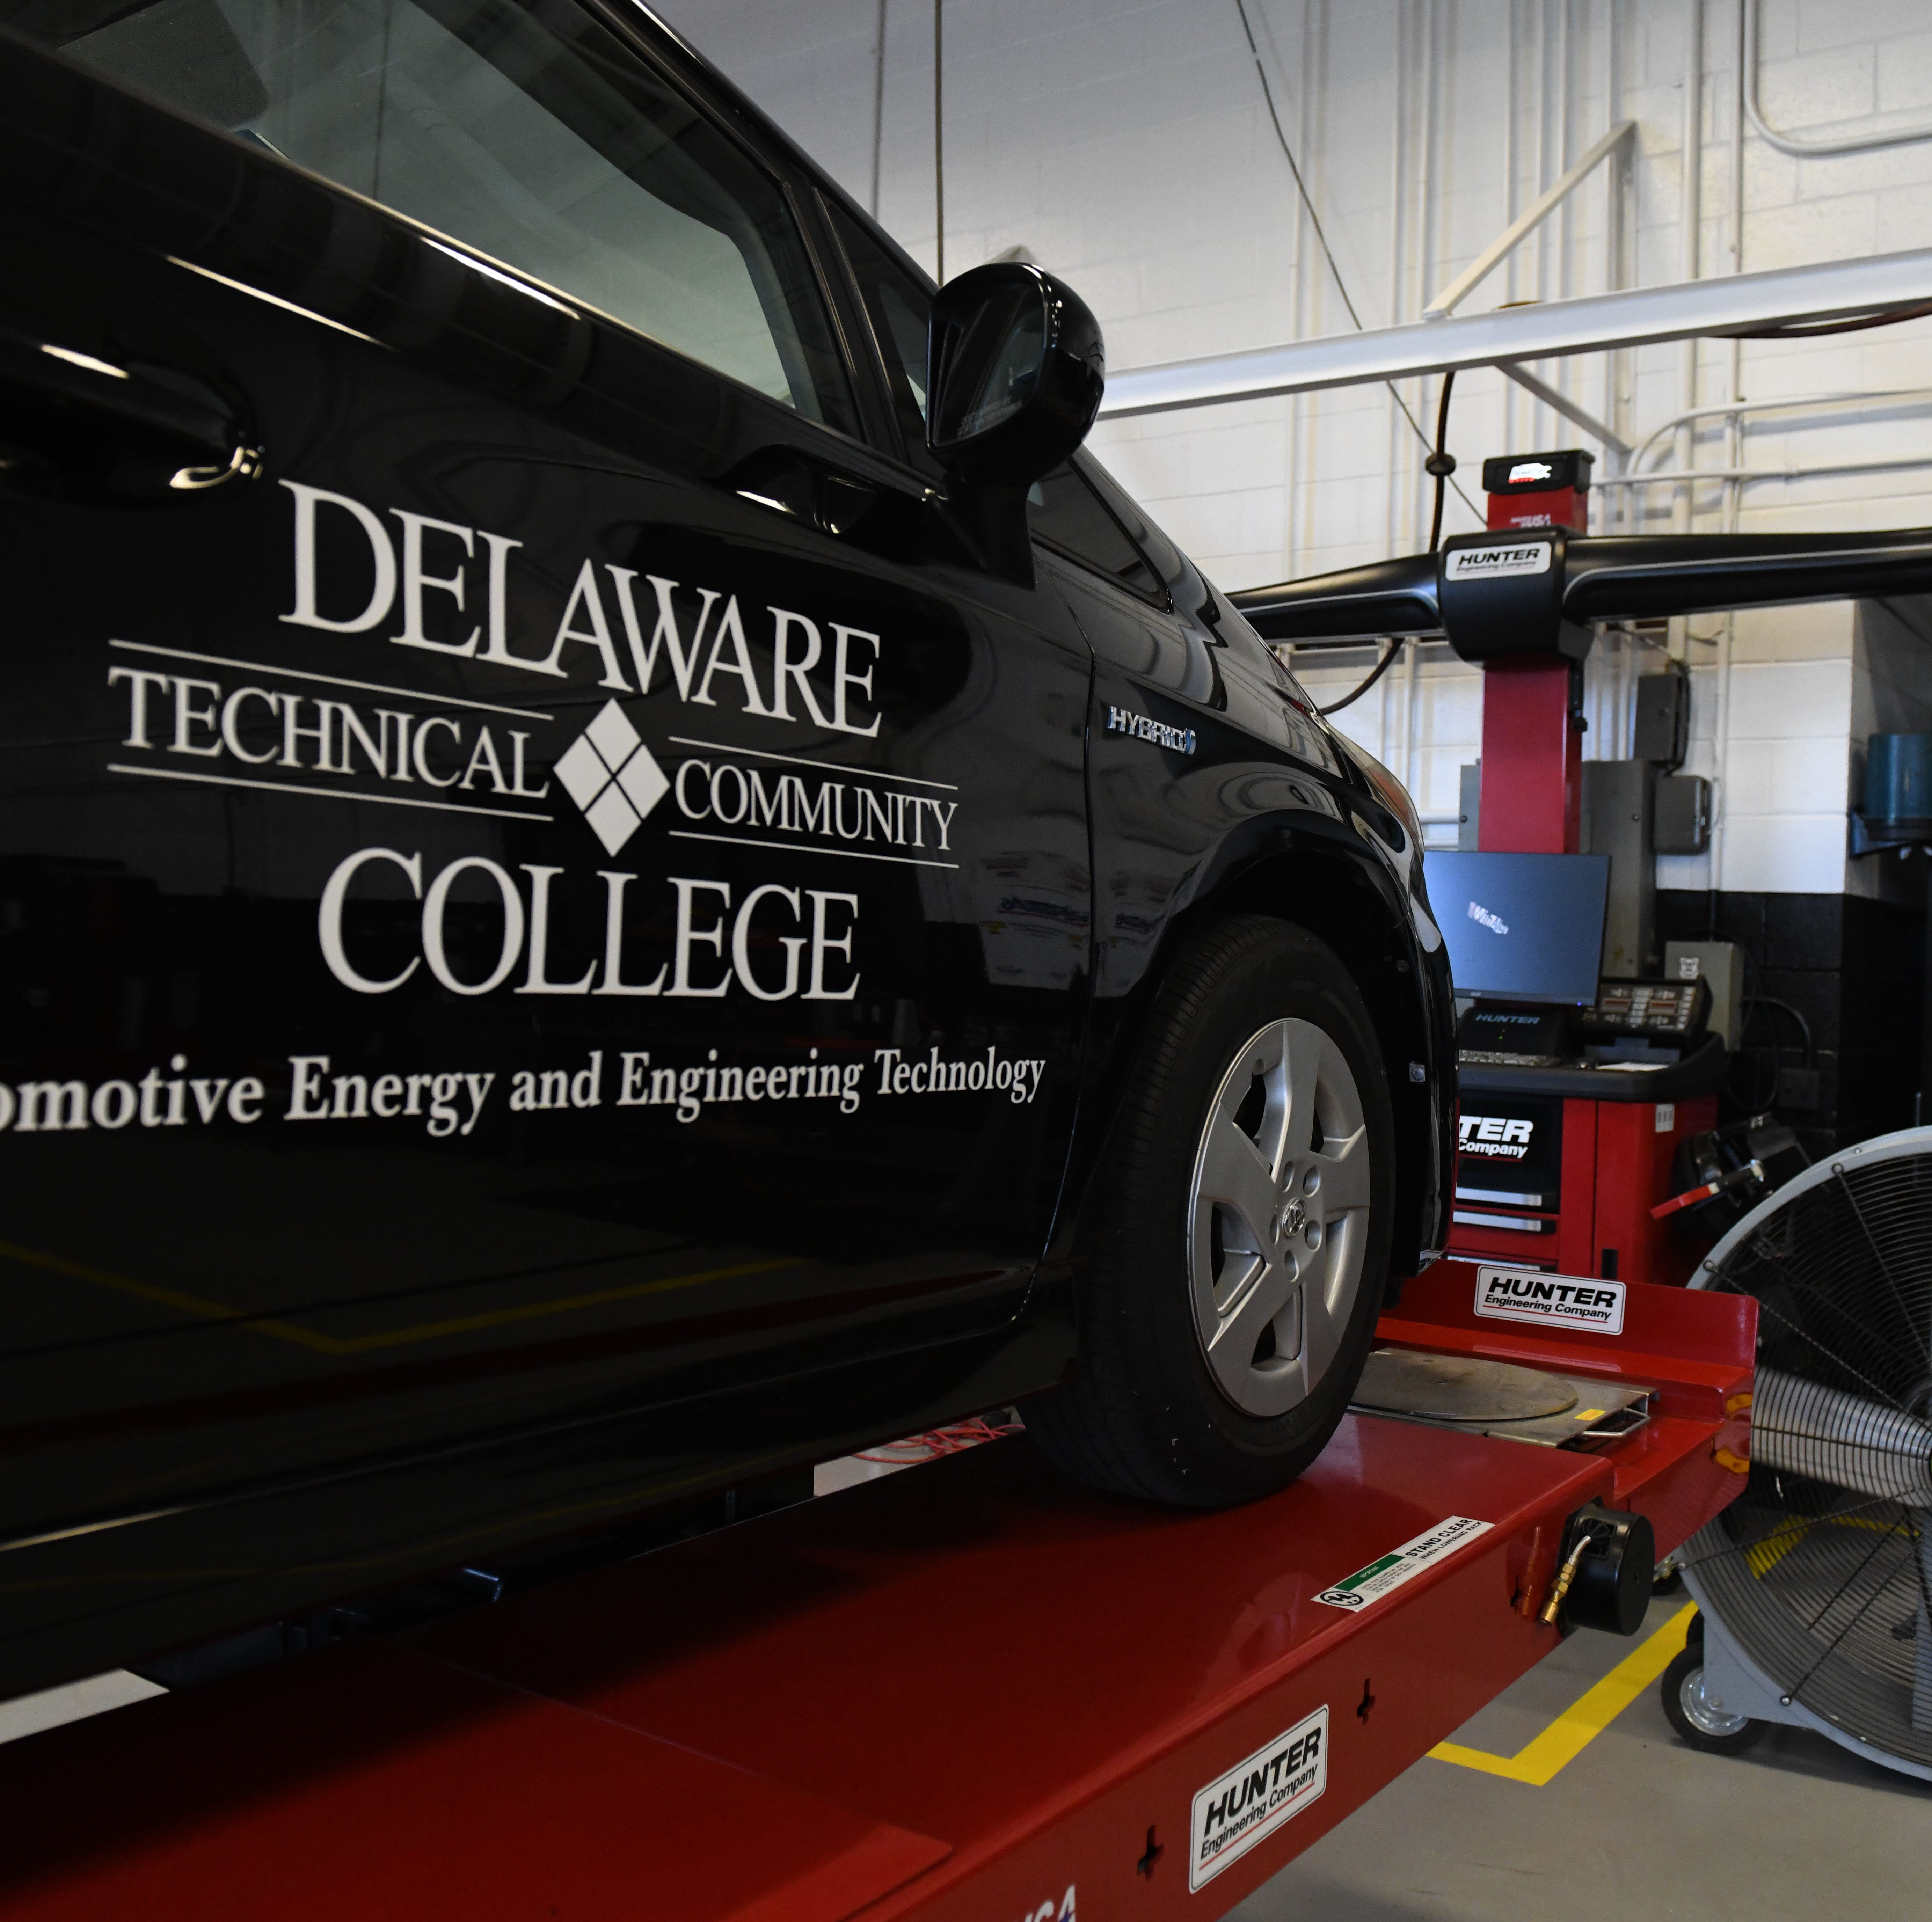 $1.97 million grant will build new automotive training center at Delaware Tech